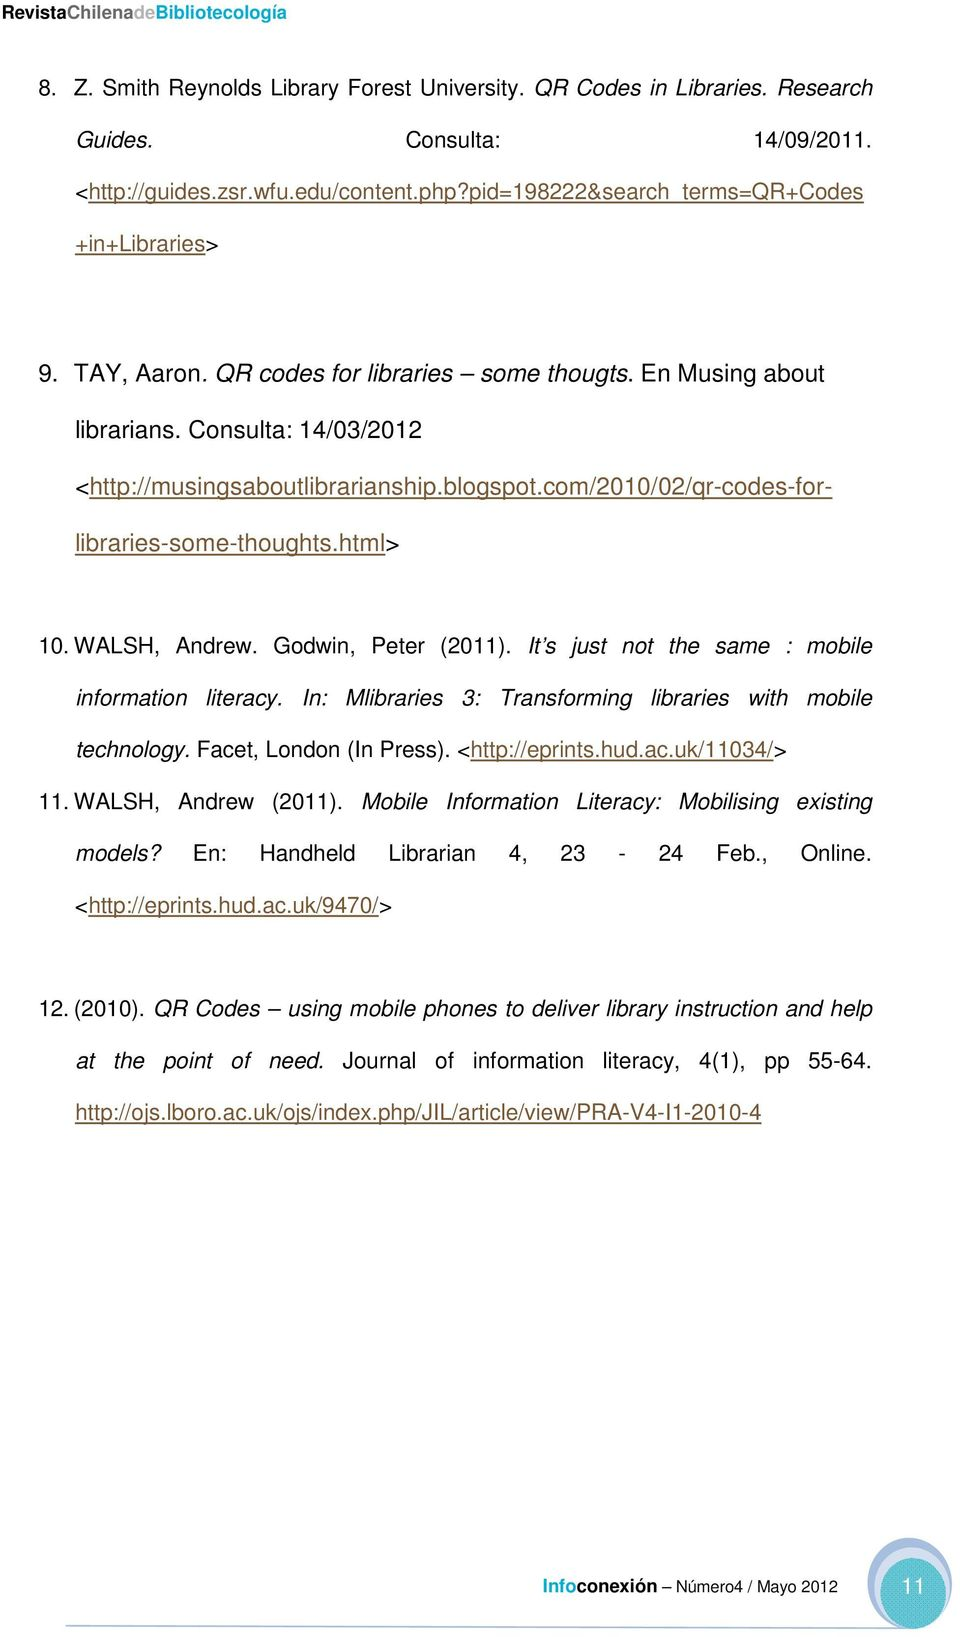 WALSH, Andrew. Godwin, Peter (2011). It s just not the same : mobile information literacy. In: Mlibraries 3: Transforming libraries with mobile technology. Facet, London (In Press). <http://eprints.